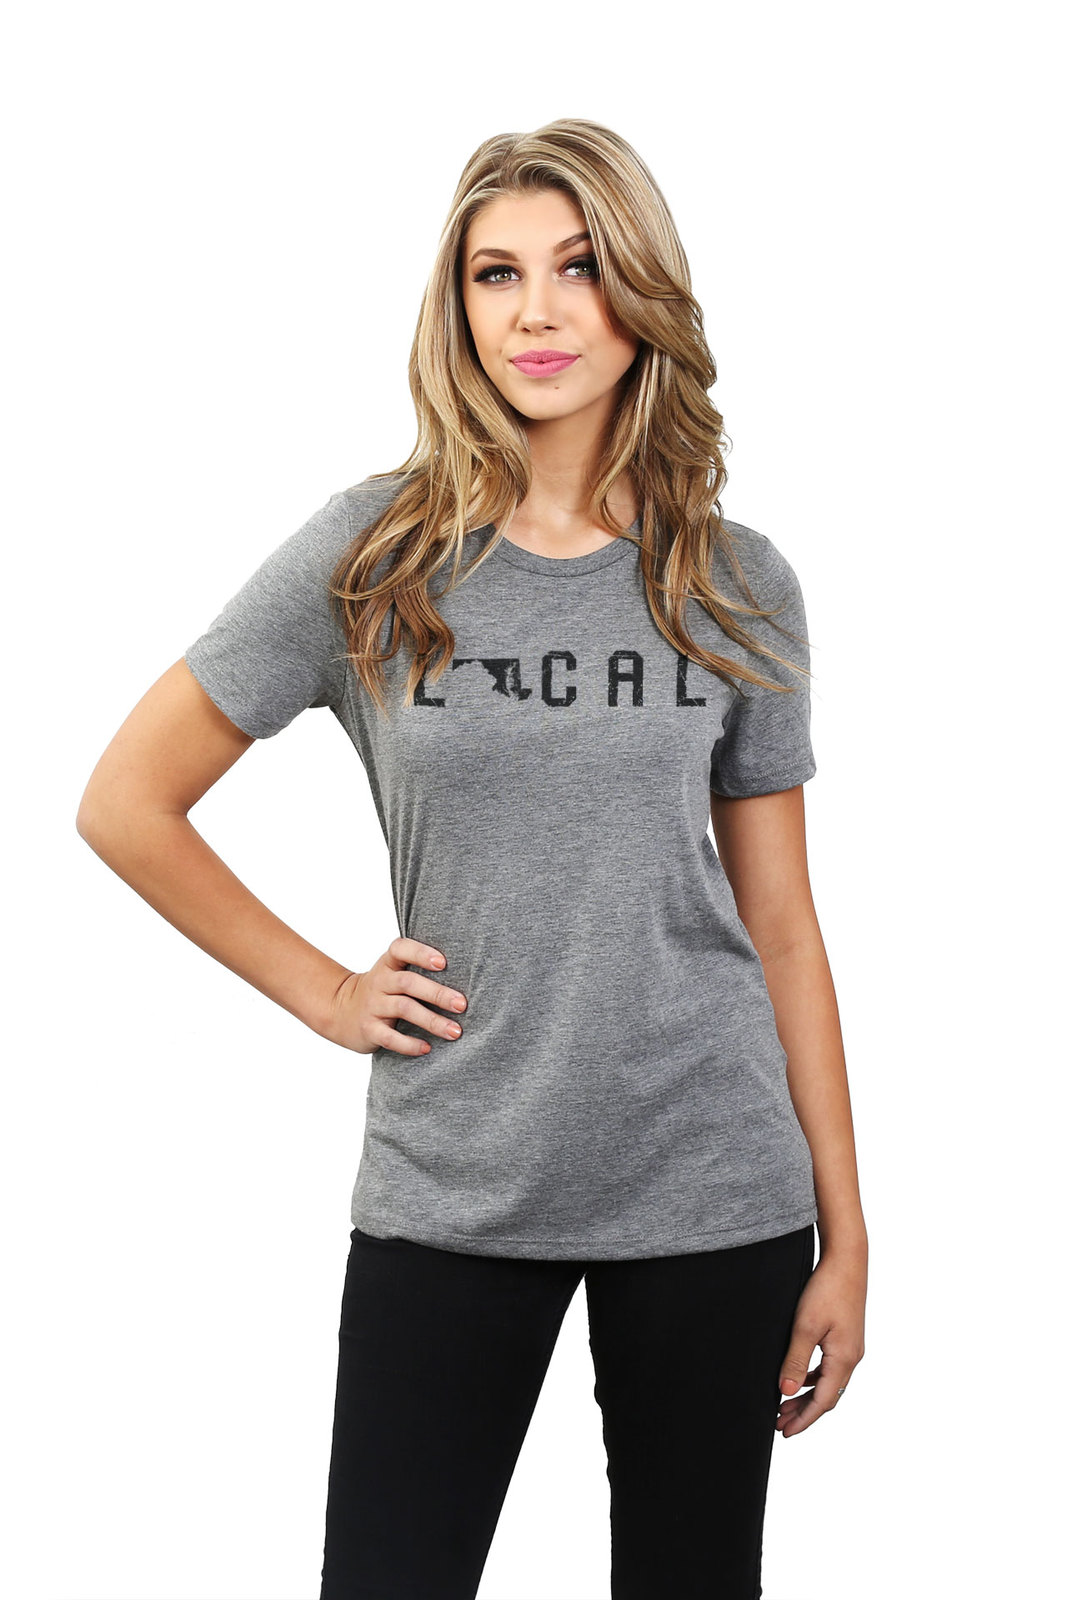 Thread Tank Local Maryland State Women's Relaxed T-Shirt Tee Heather Grey